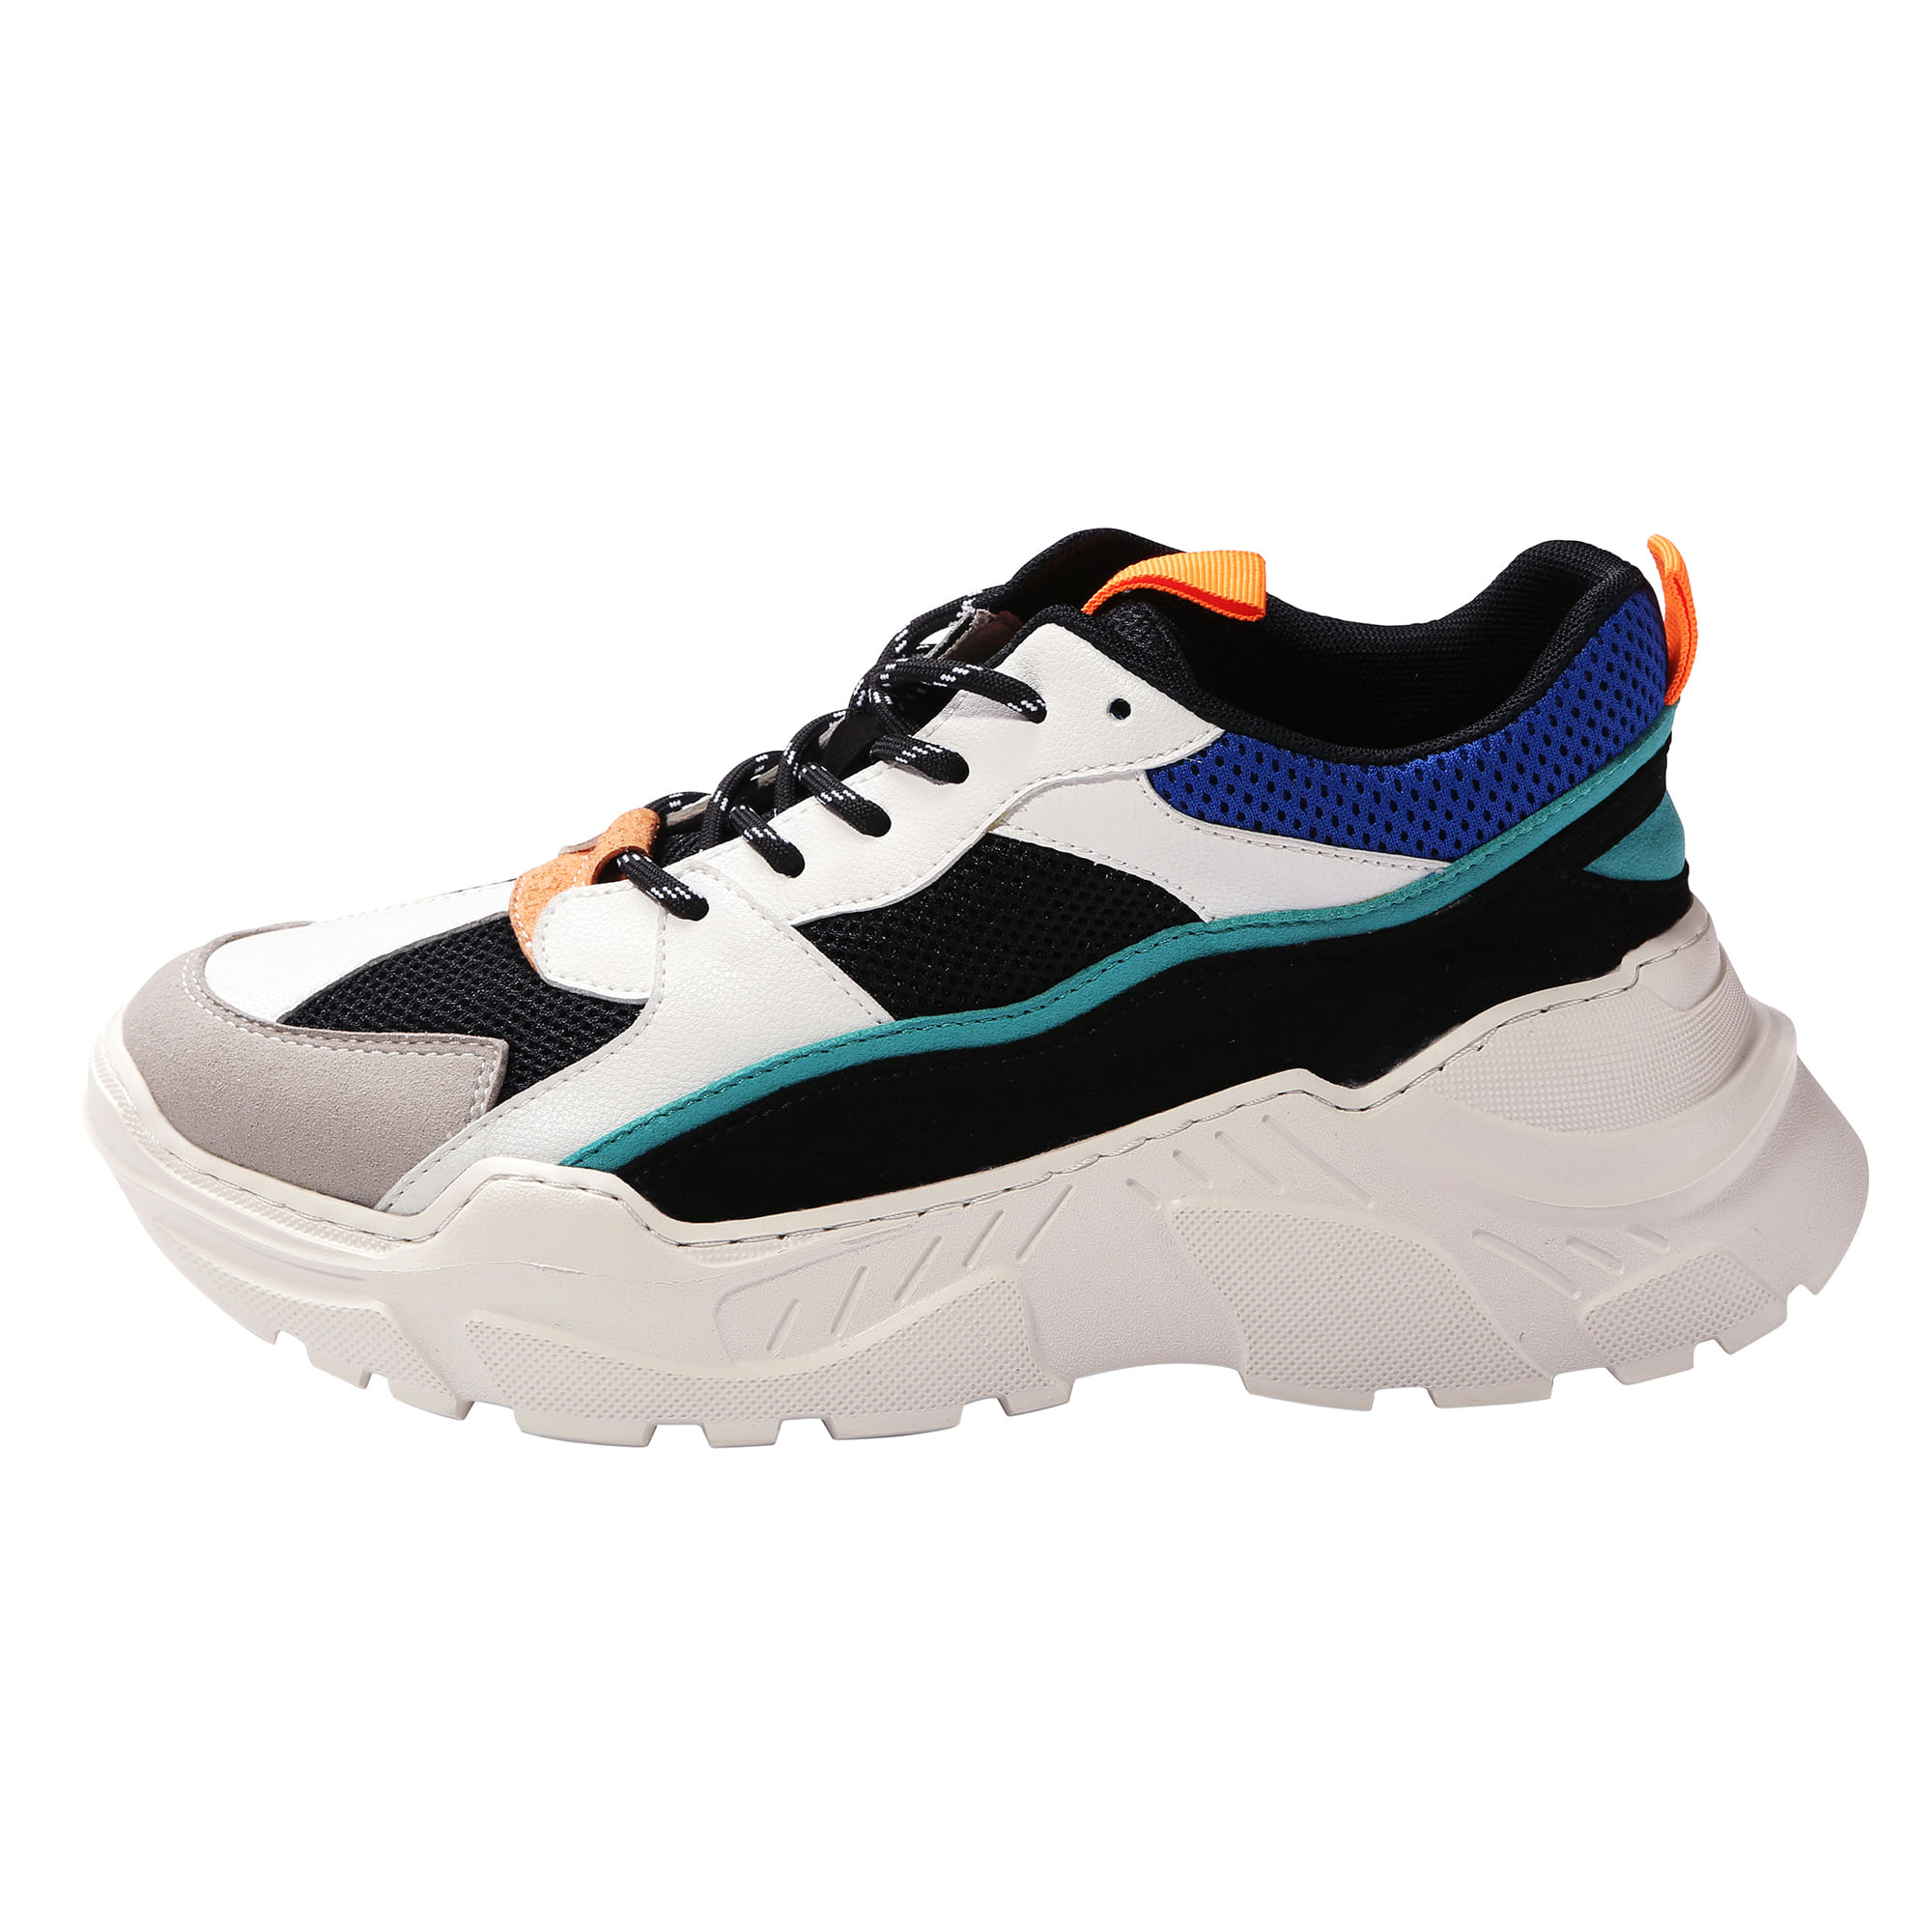 19FW MM Runner sneakers WH MYASH0501